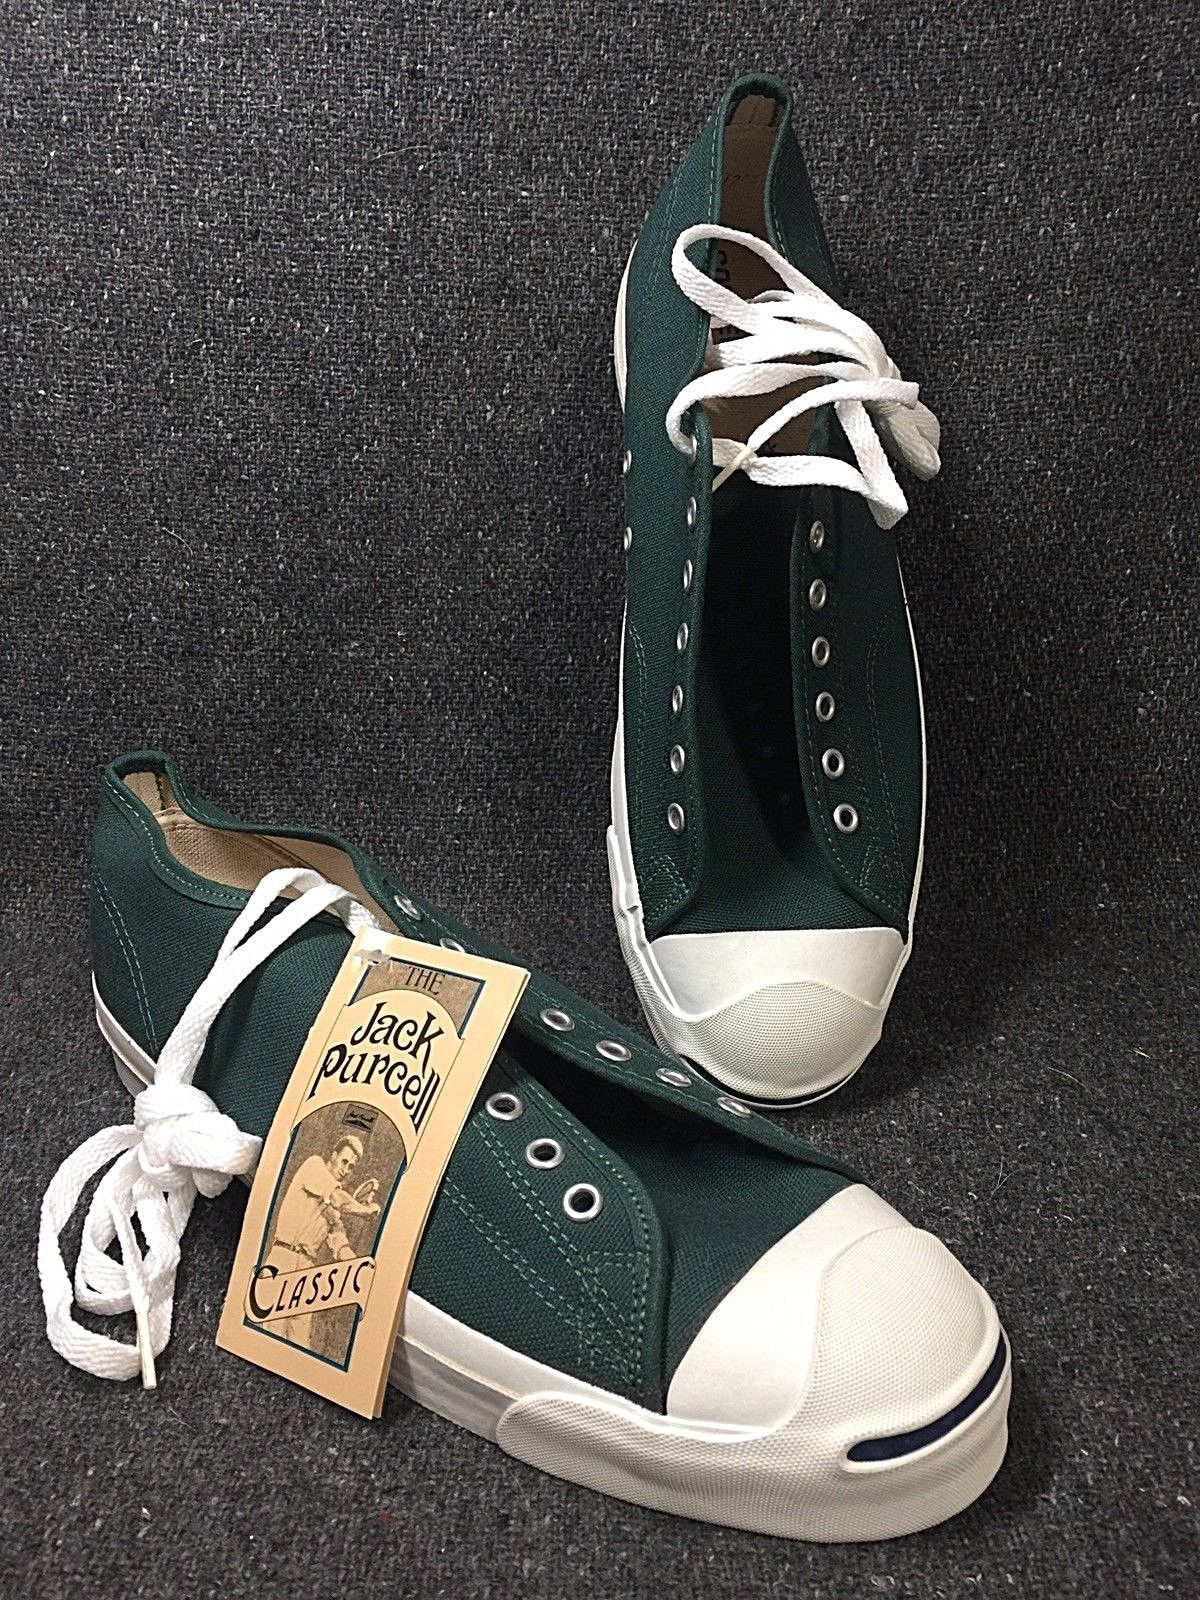 9a0cef63b2a7 Details about Vintage Converse Jack Purcell 70 s 80 s AUTHENTIC MADE ...